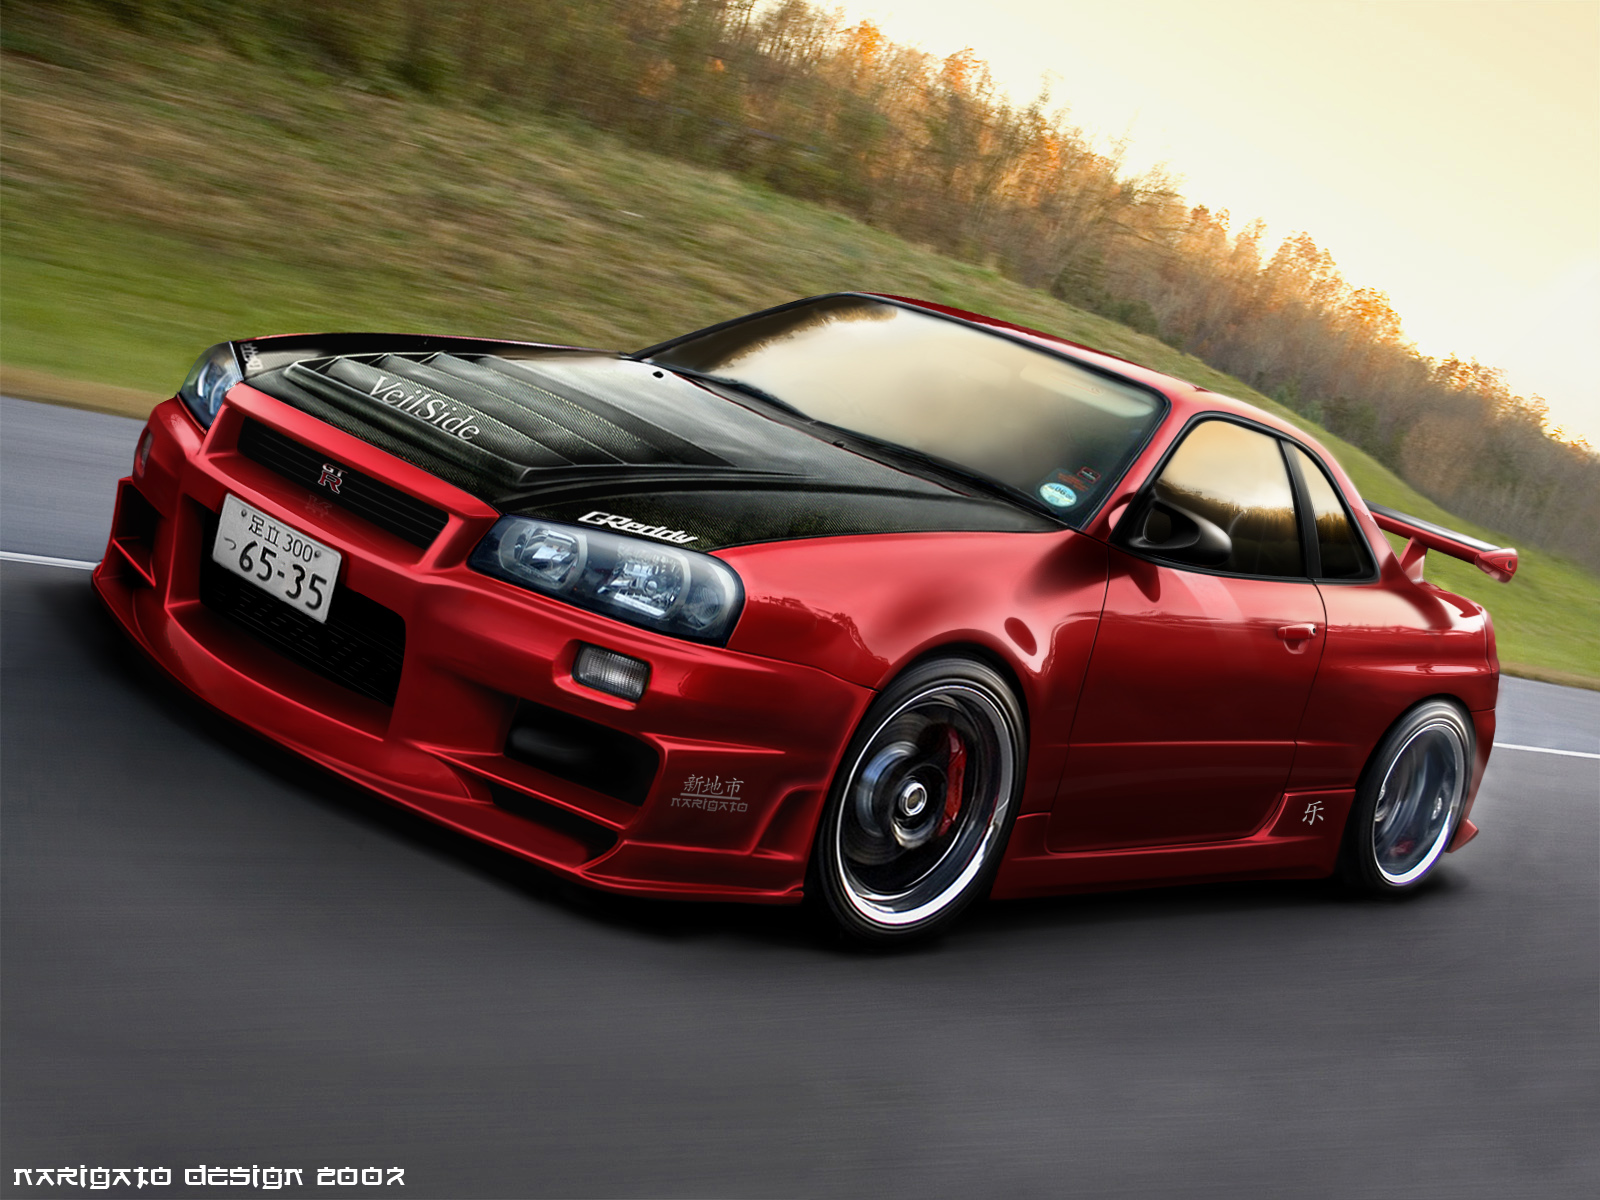 2007 nissan skyline coupe images hd cars wallpaper nissan skyline r34 by narigato on deviantart nissan skyline r34 by narigato nissan skyline r34 by vanachro Images